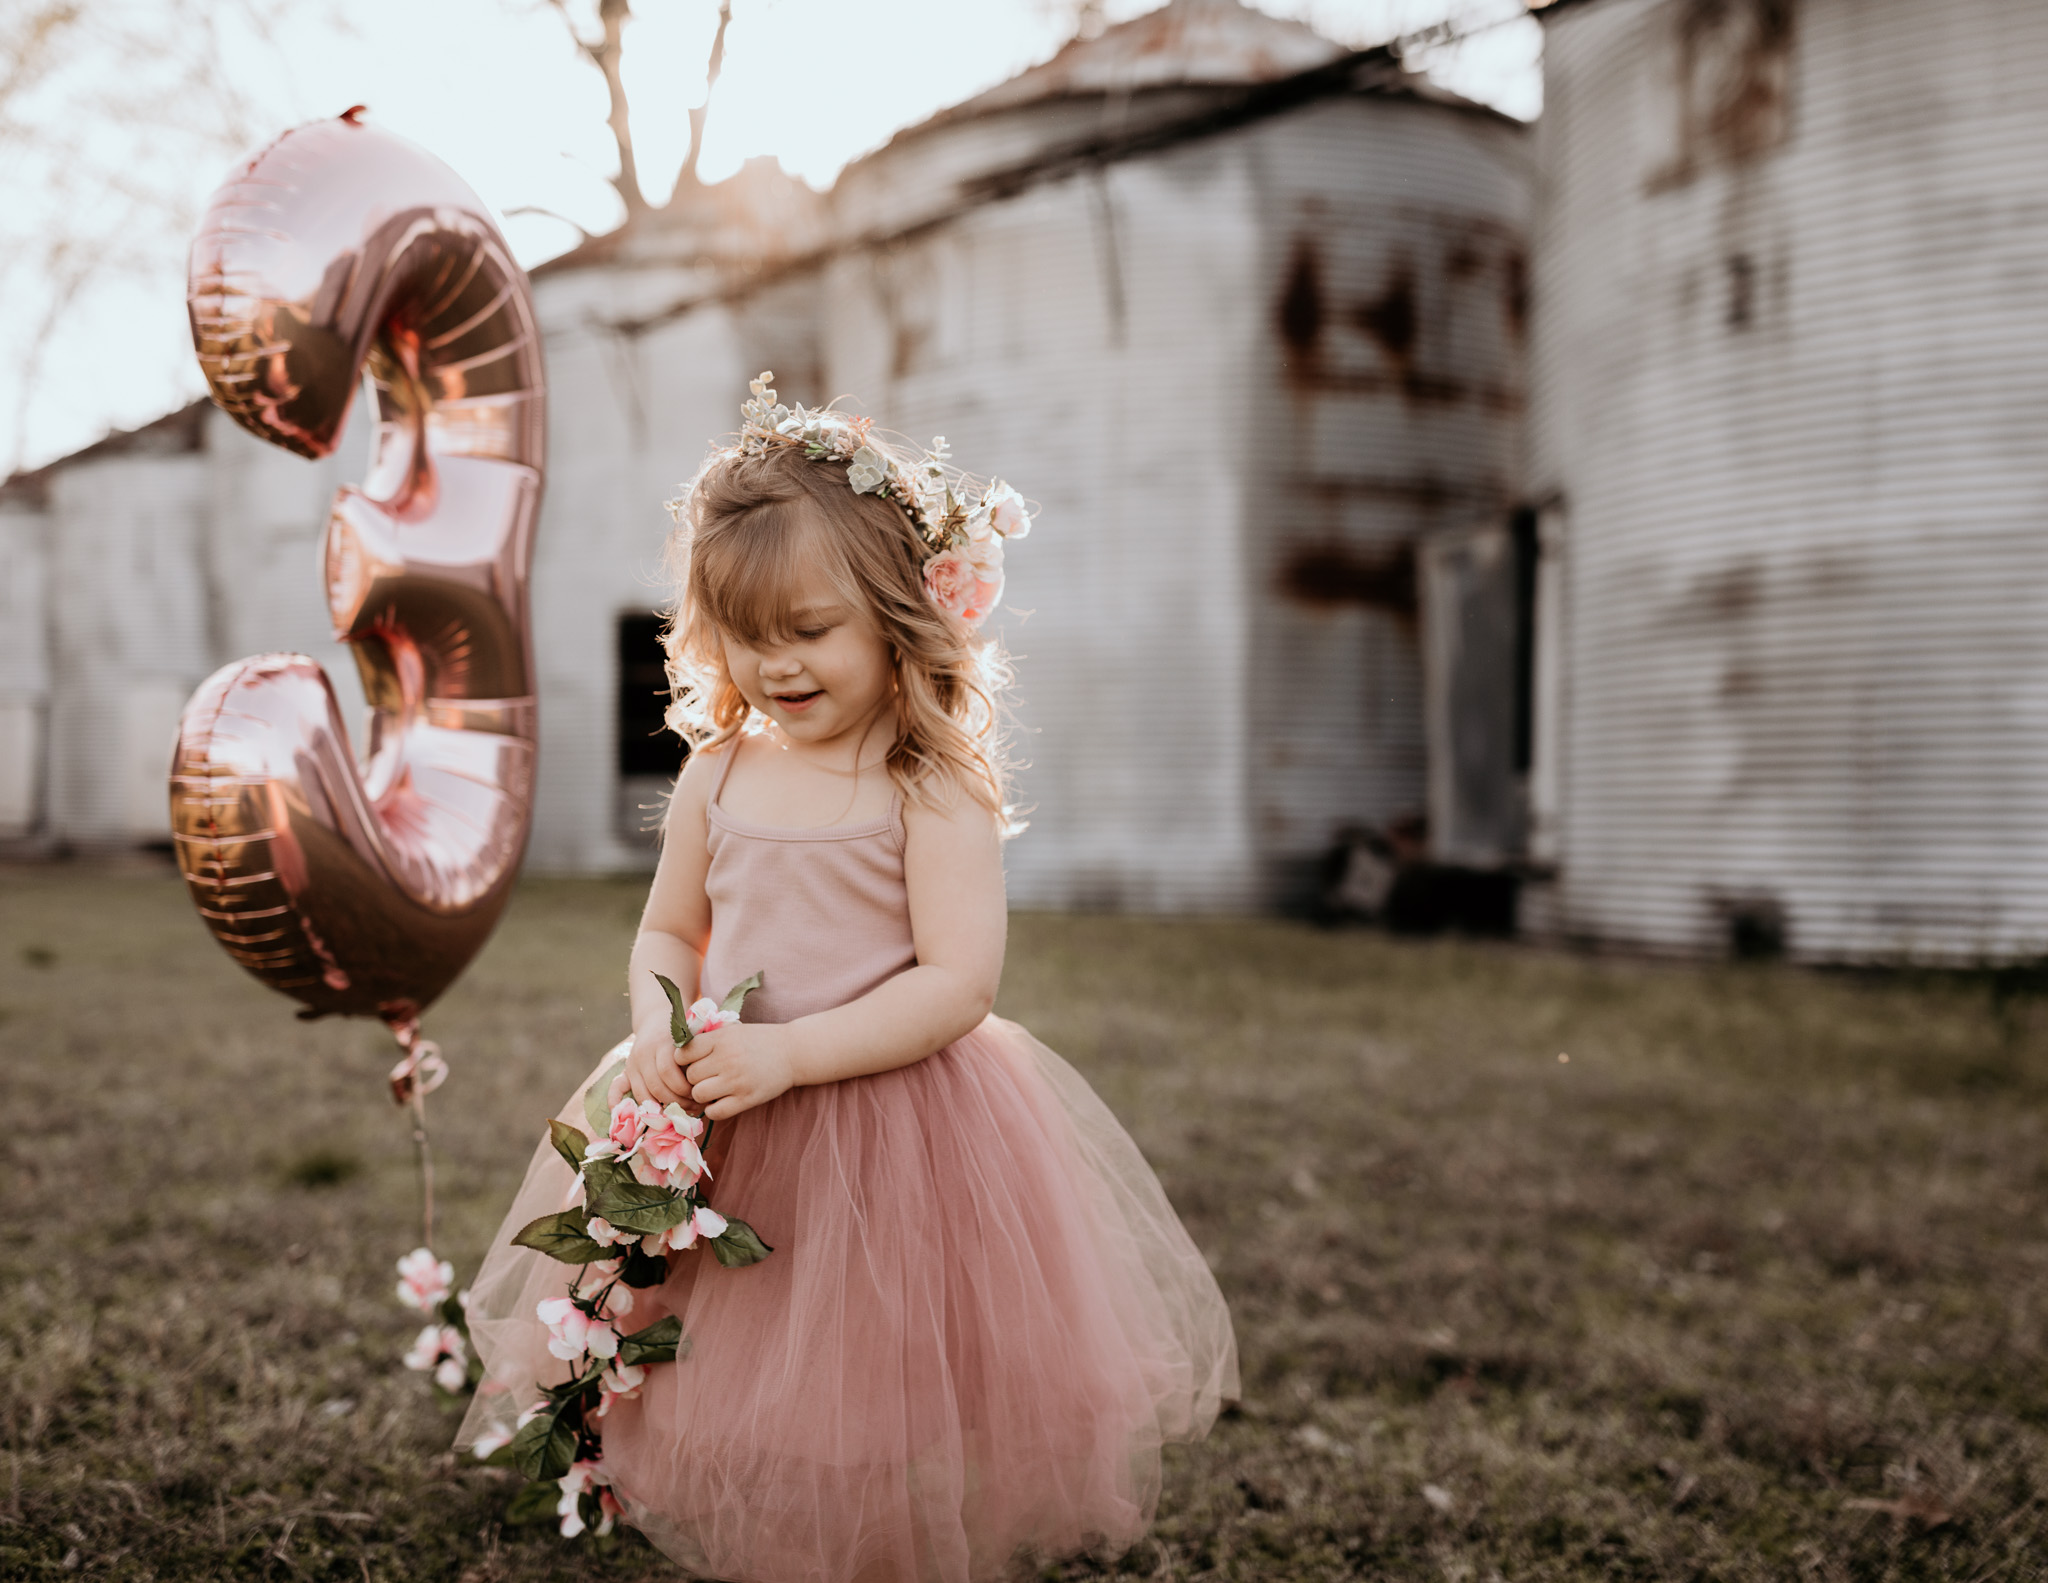 Young Girl Holding Birthday Balloon